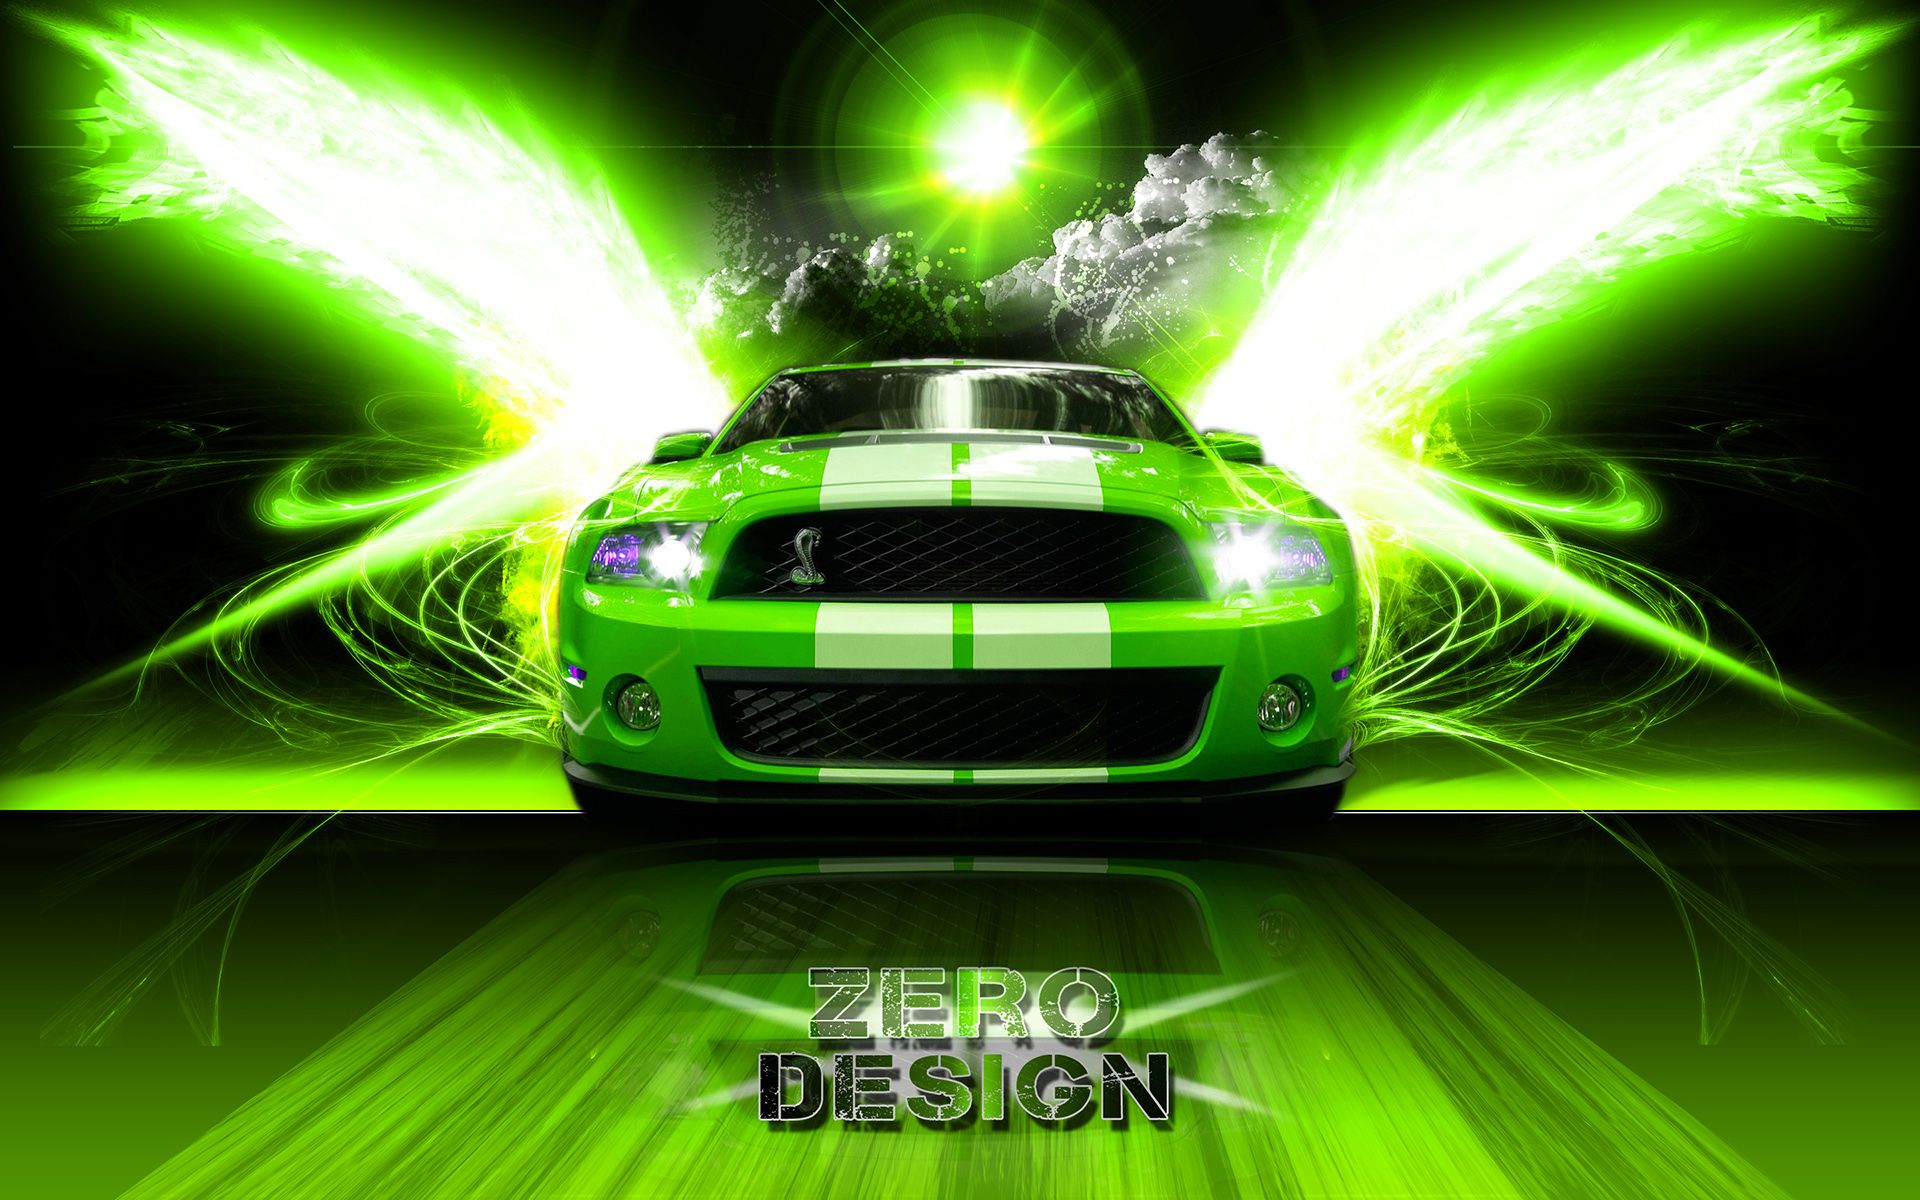 Green ford mustang shelby gt500 car picture hd wallpaper